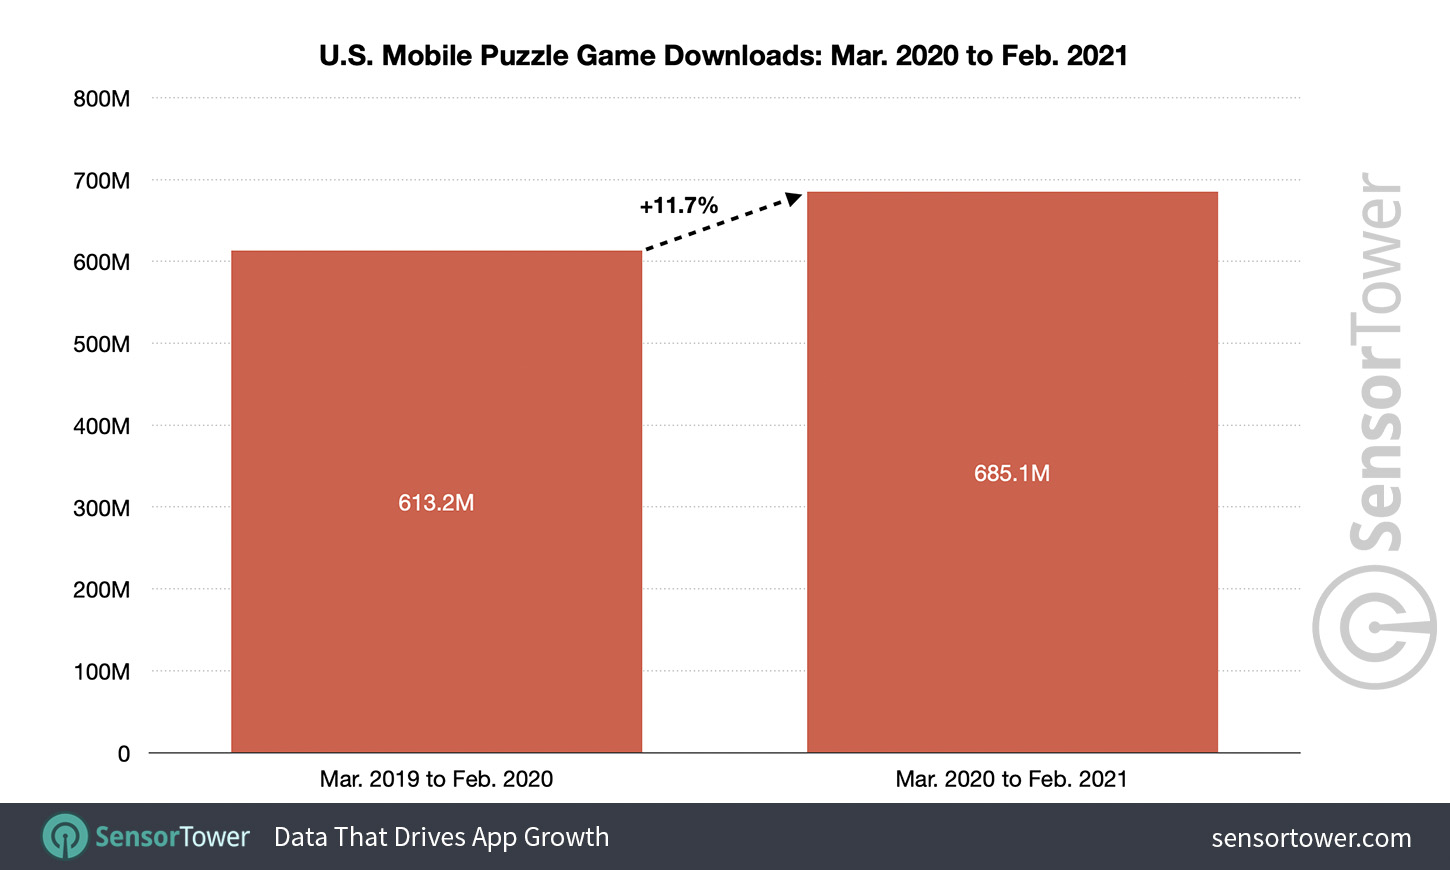 Mobile puzzle game downloads in the United States: March 2020 to February 2021